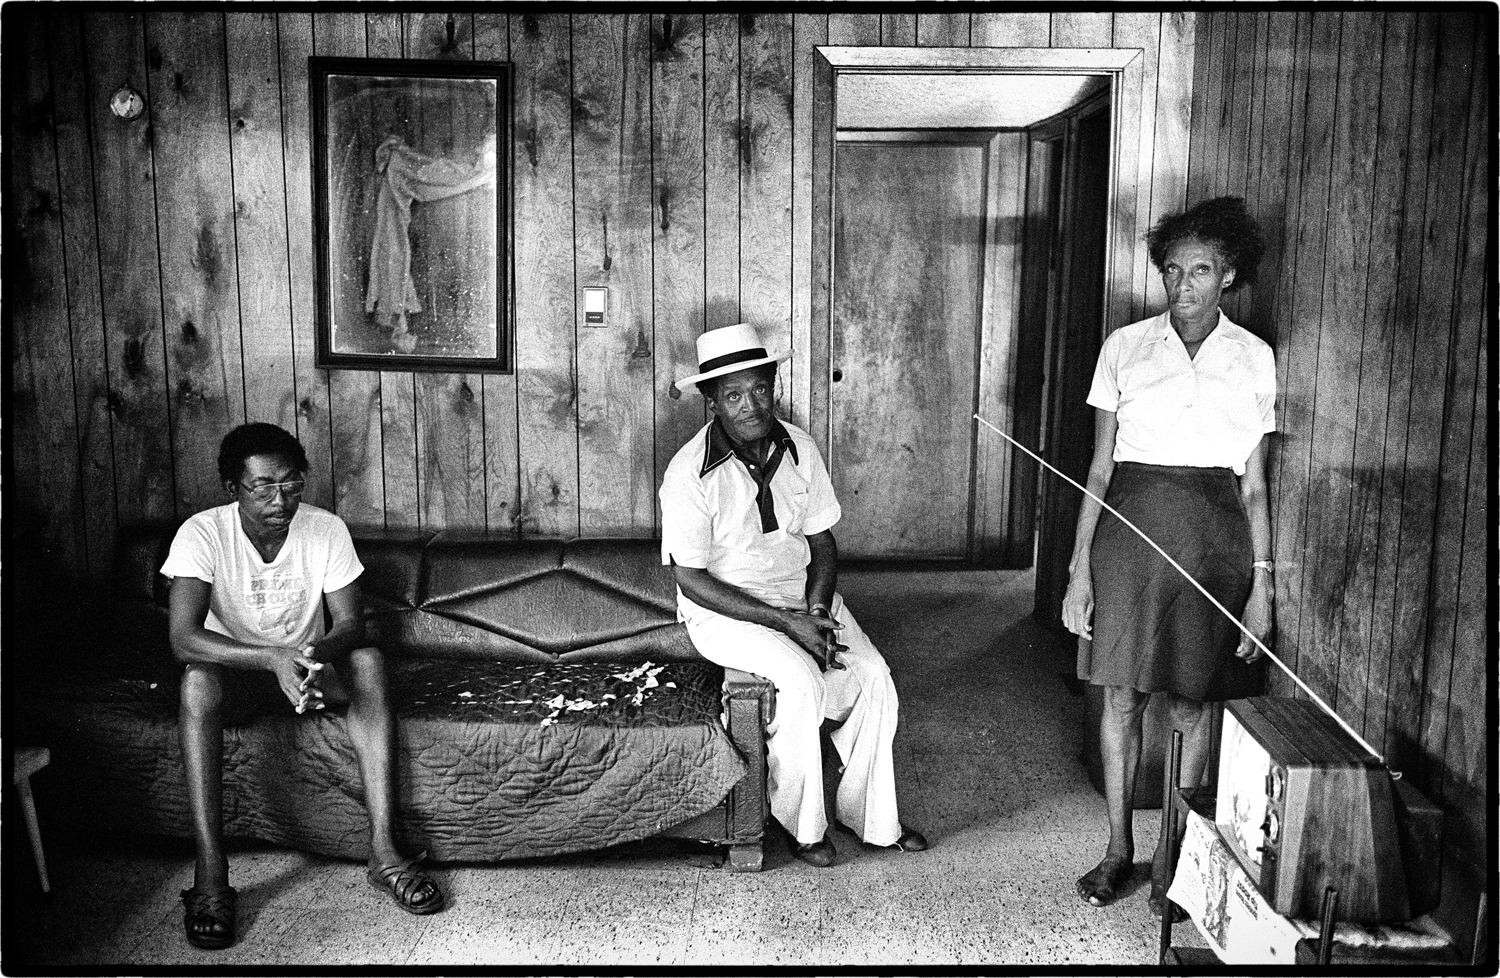 alain keler - in frame - blues mississippi